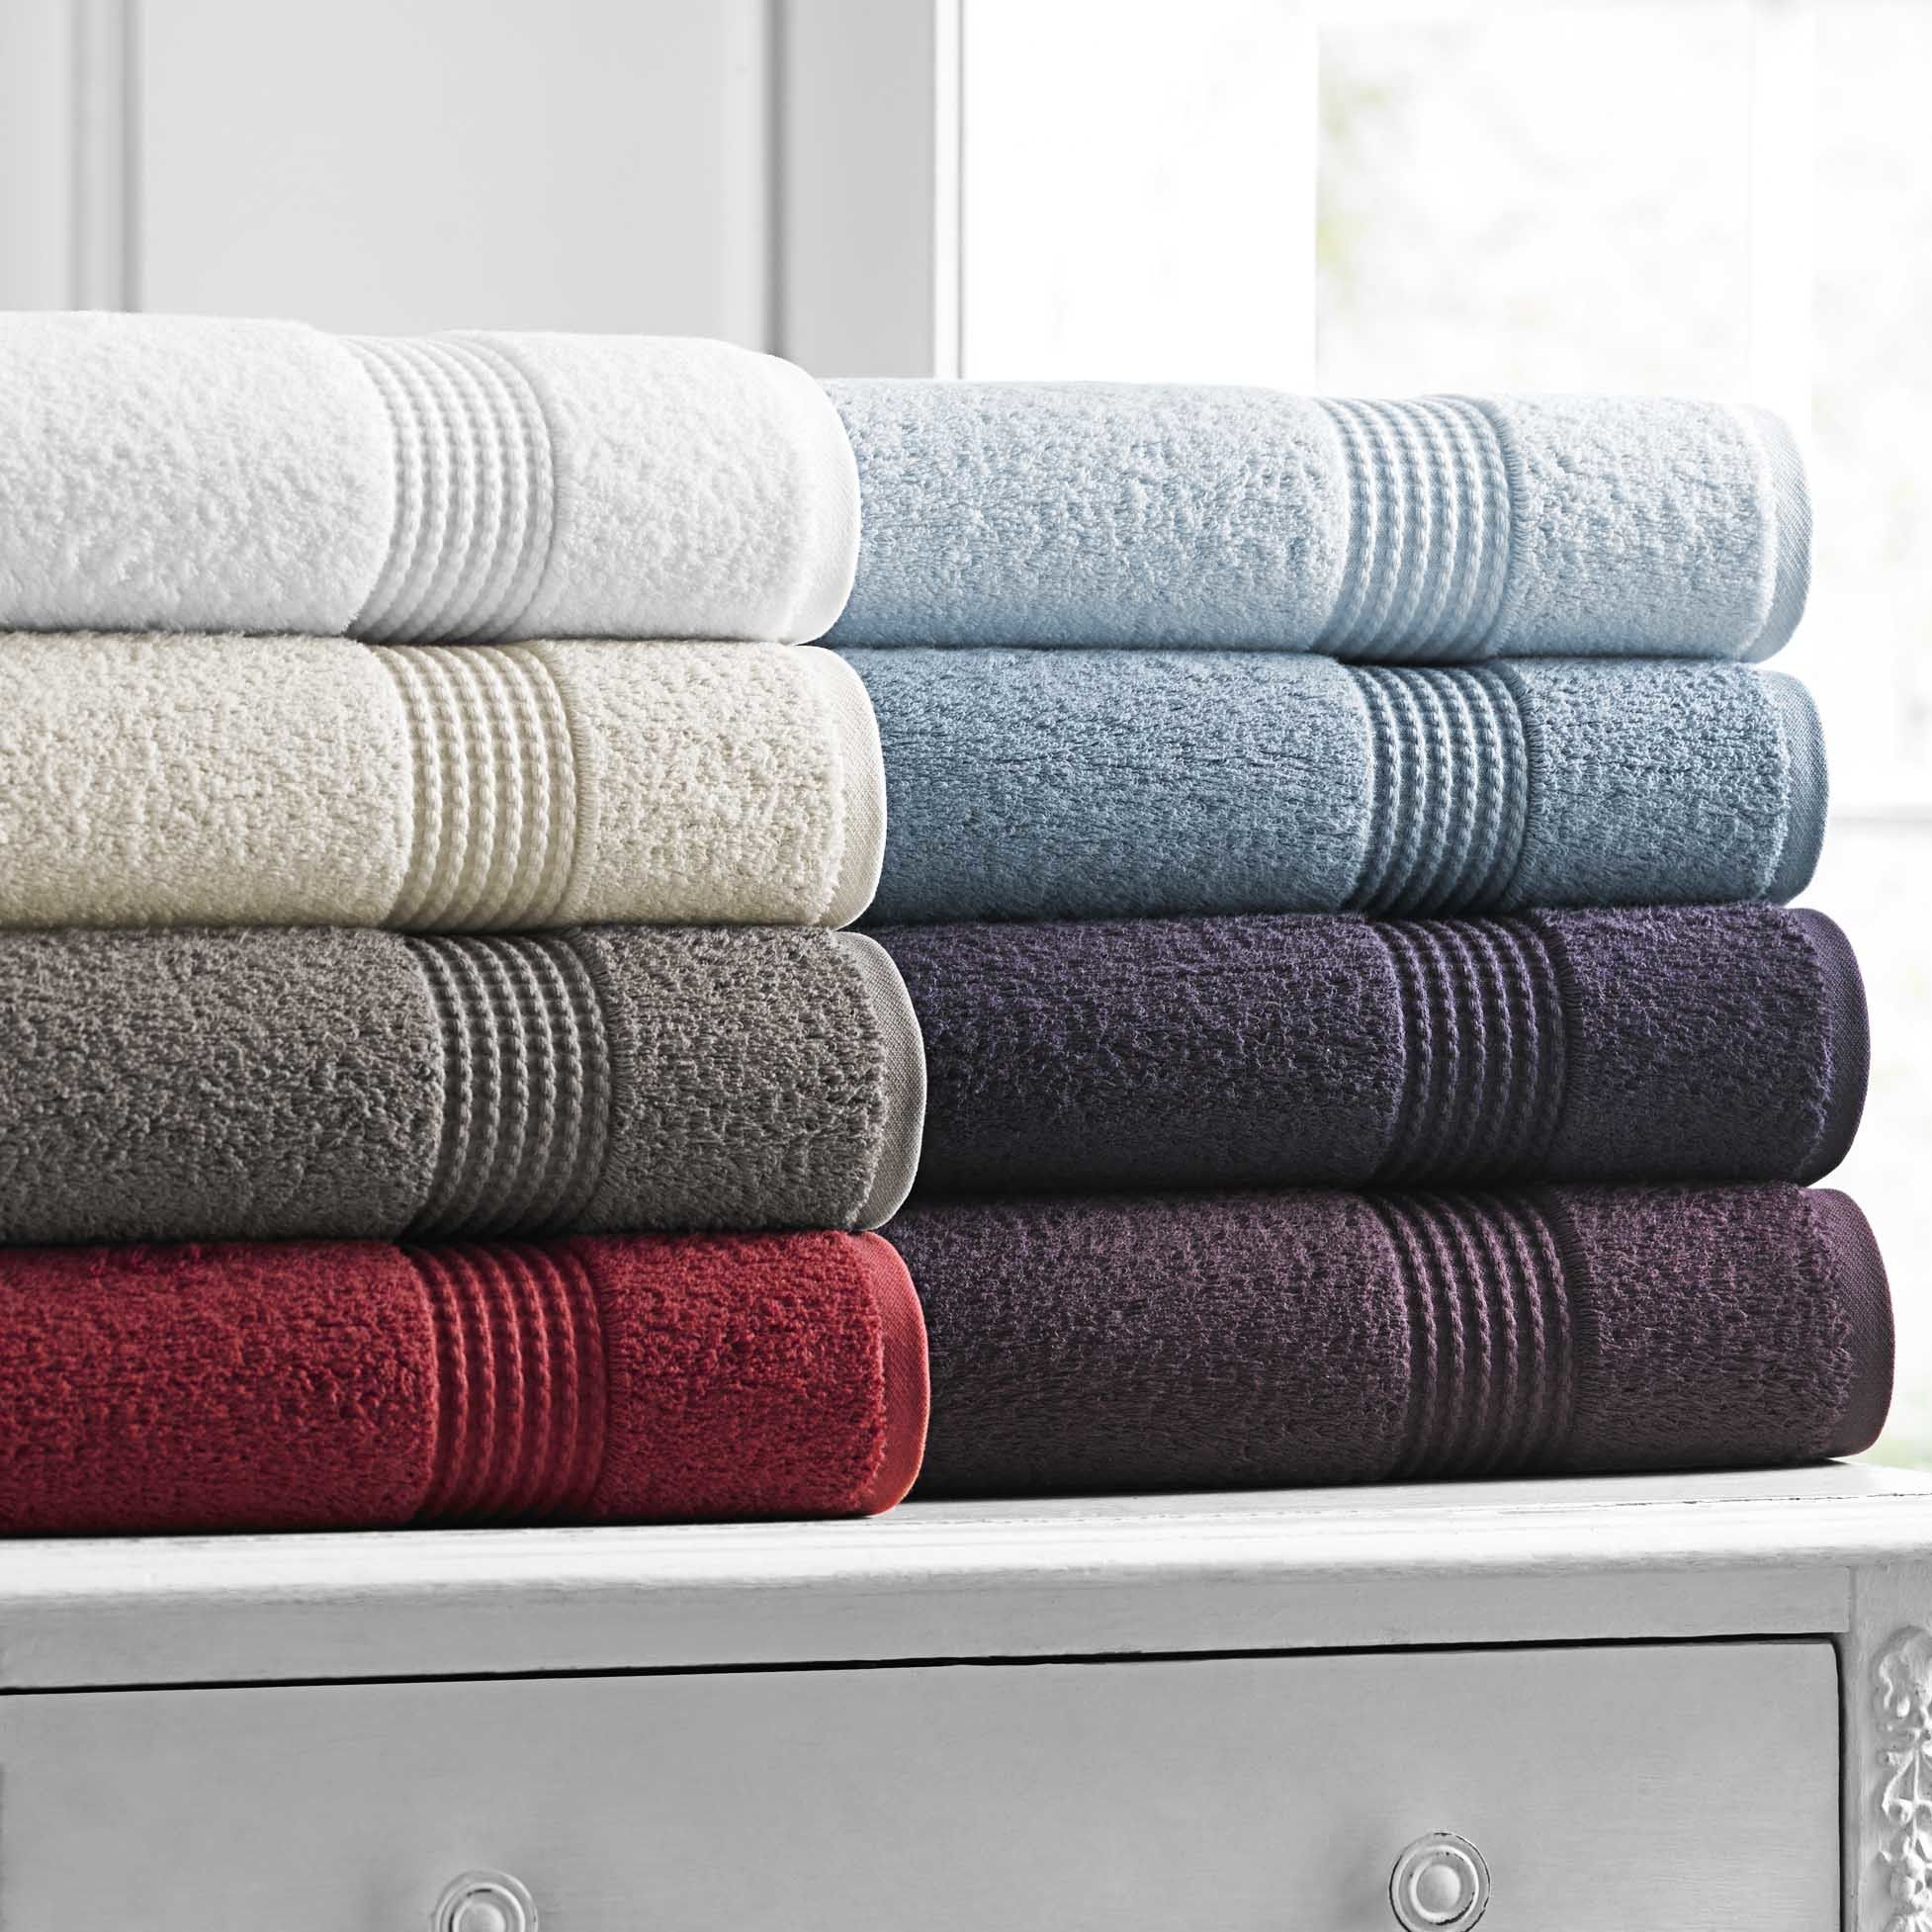 Miranda Haus Soft Absorbent Rayon From Bamboo And Cotton 6 Piece